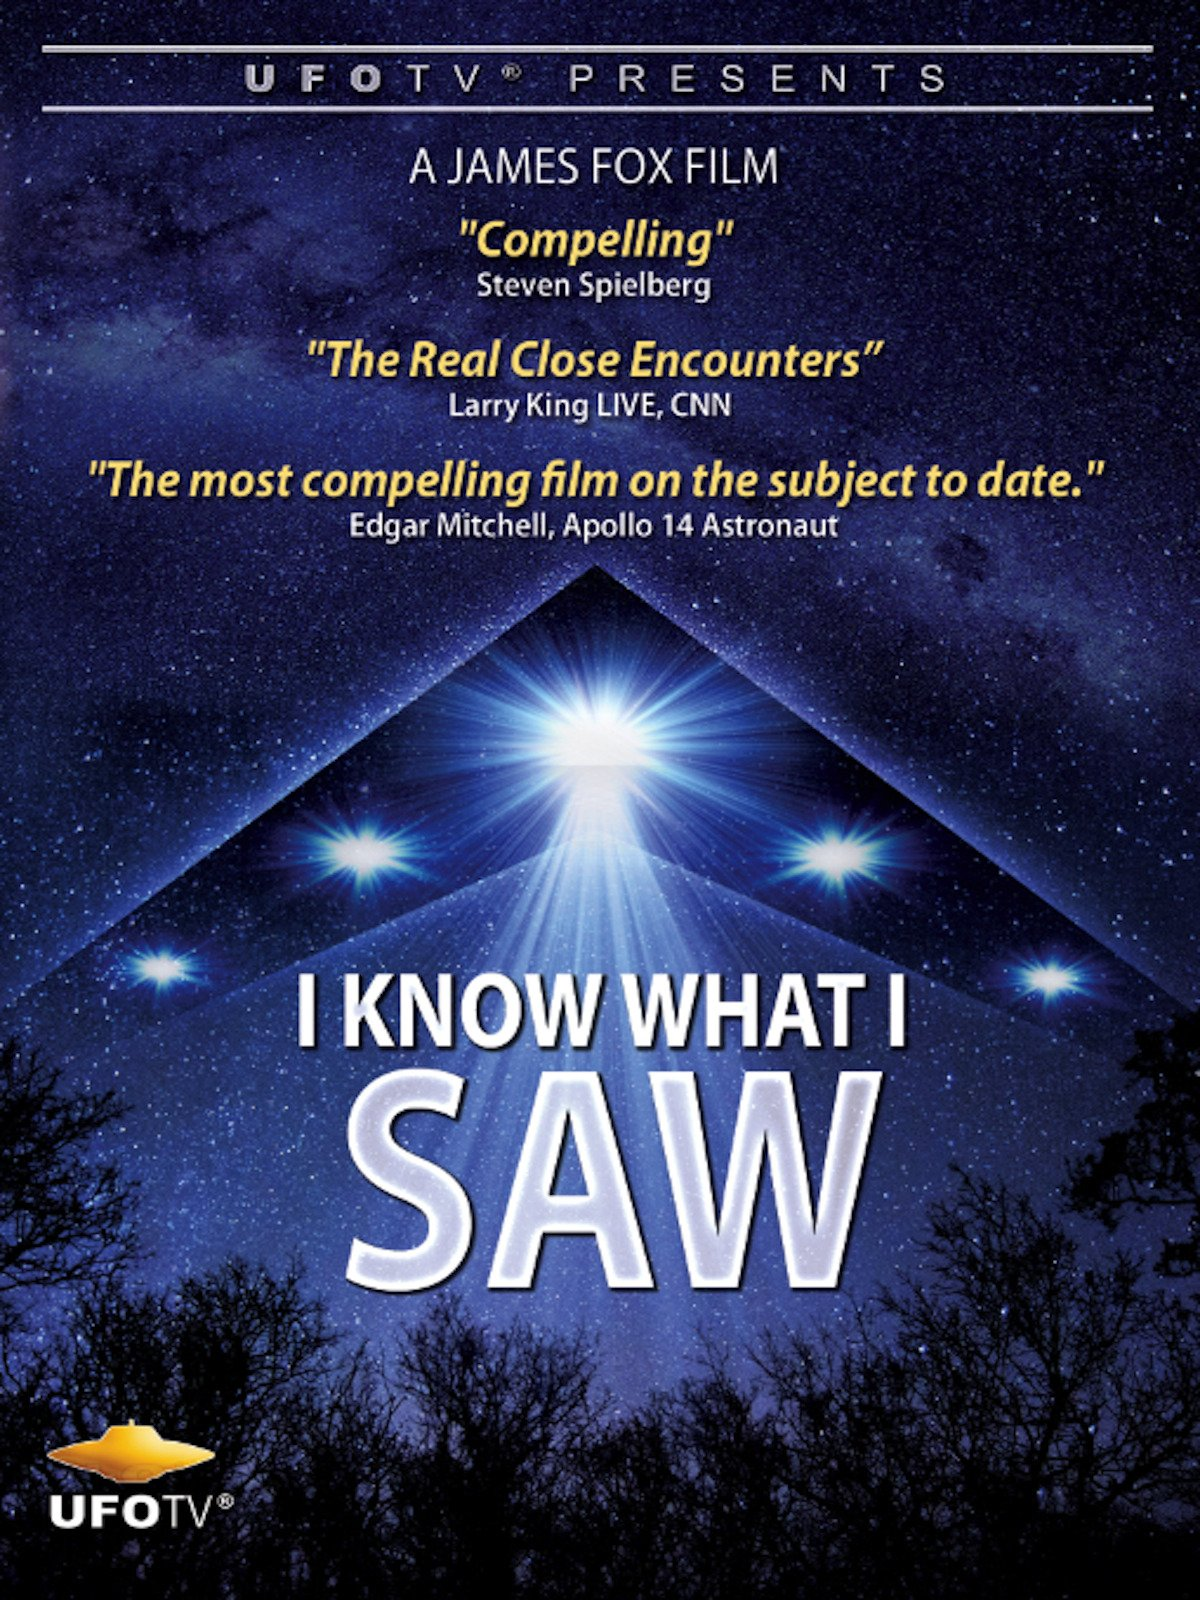 UFOTV Presents: I Know What I Saw